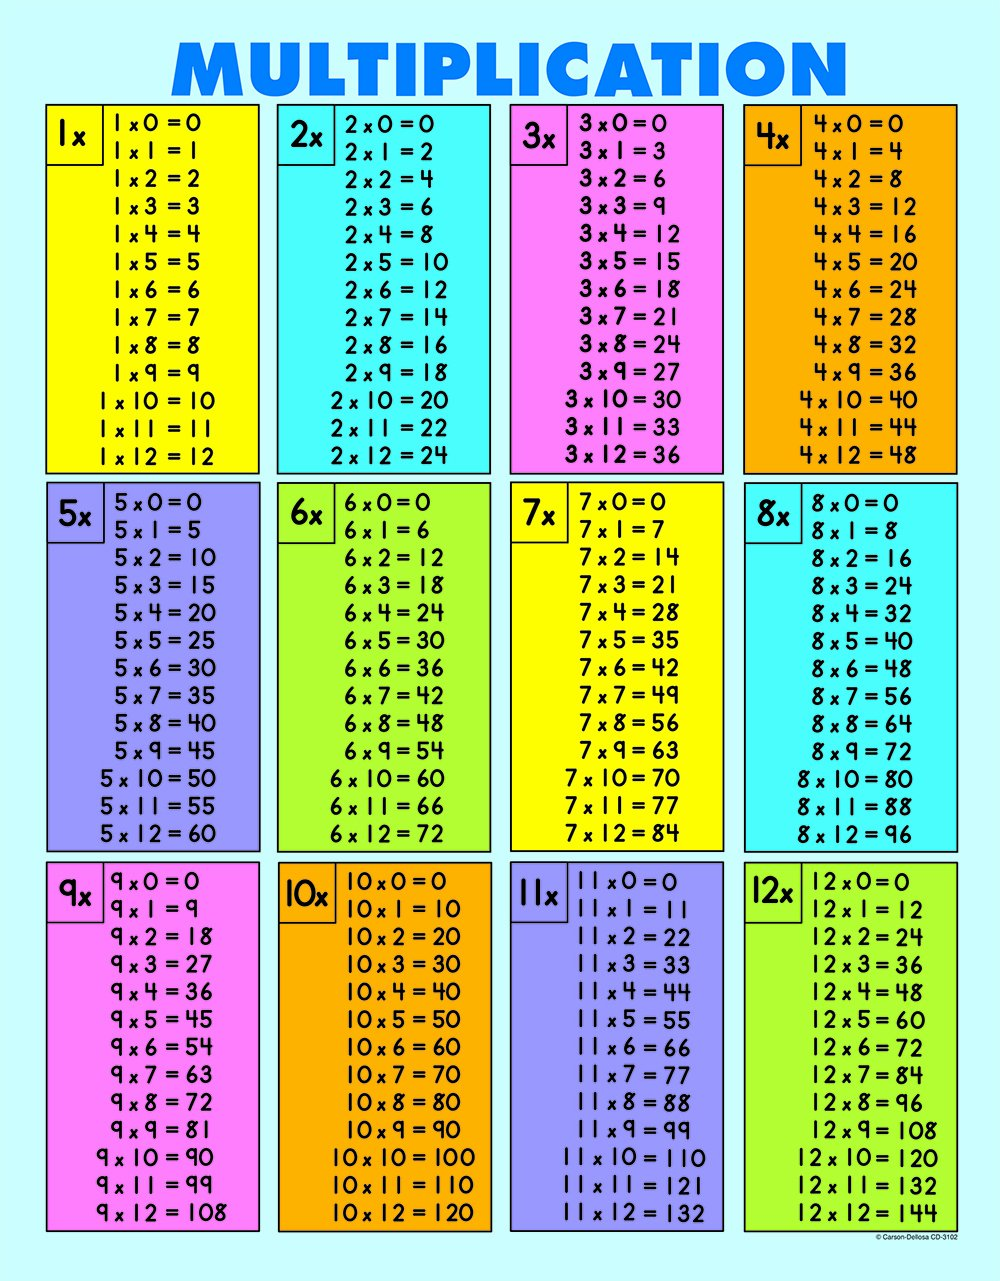 Carson dellosa multiplication tables all facts to 12 - Toute les table de multiplication de 1 a 100 ...